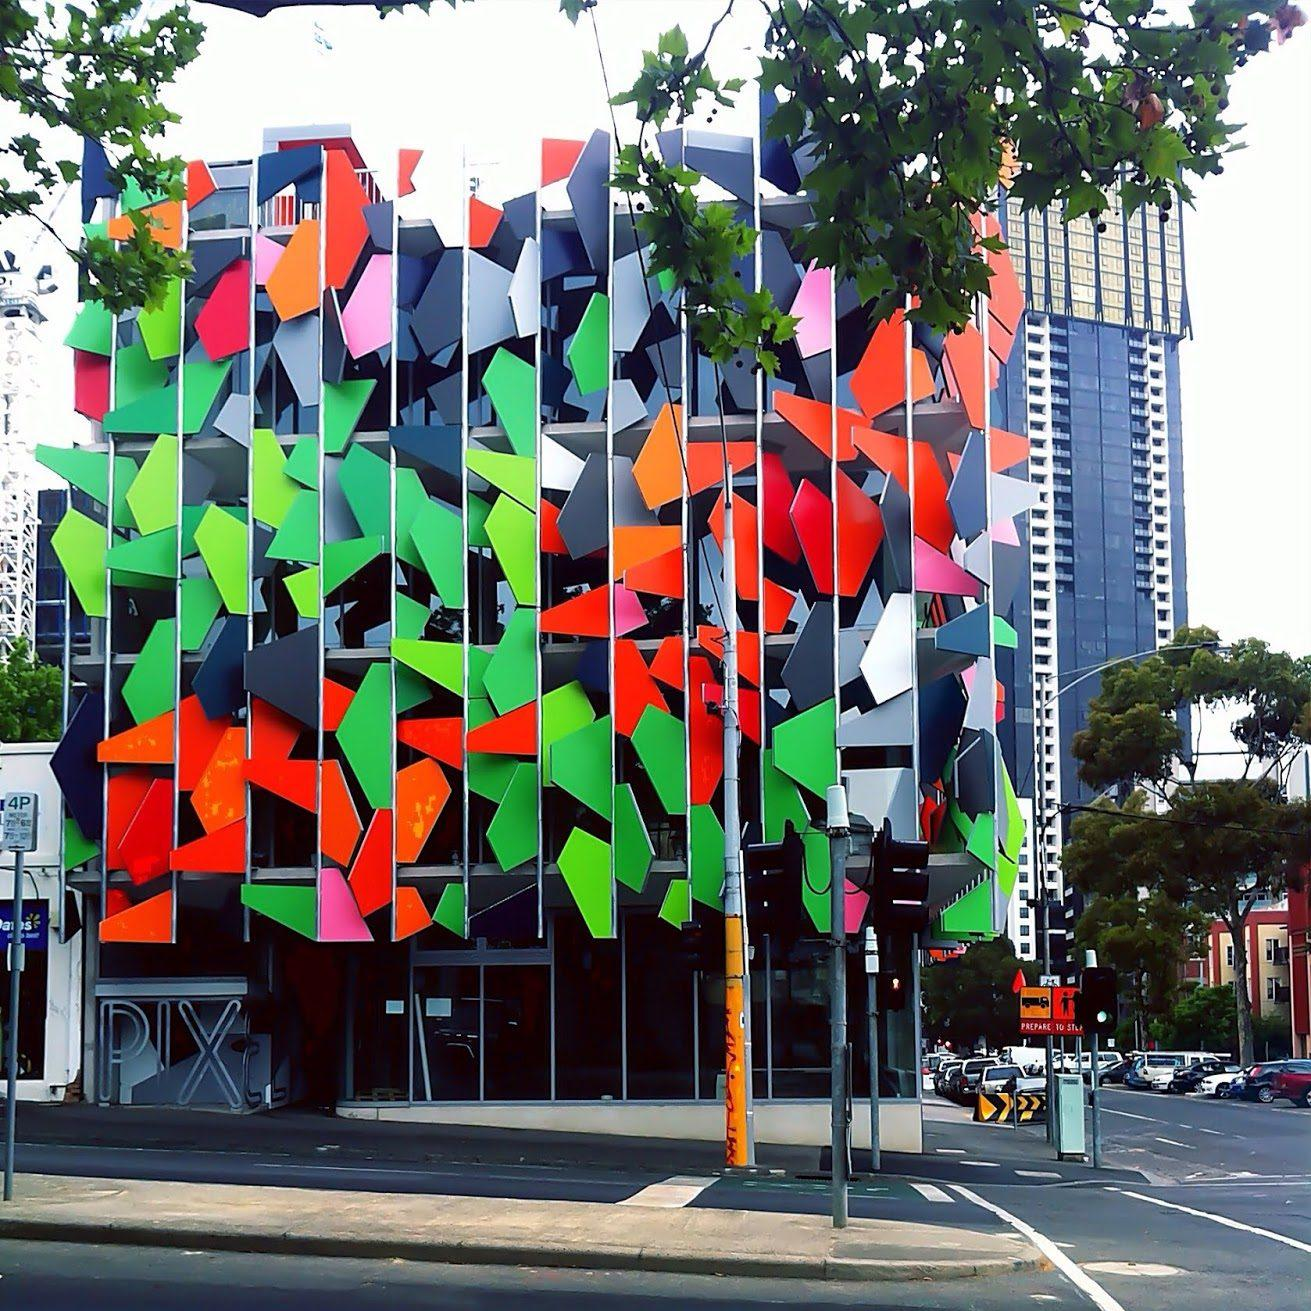 The Pixel building is a sustainable high-rise.